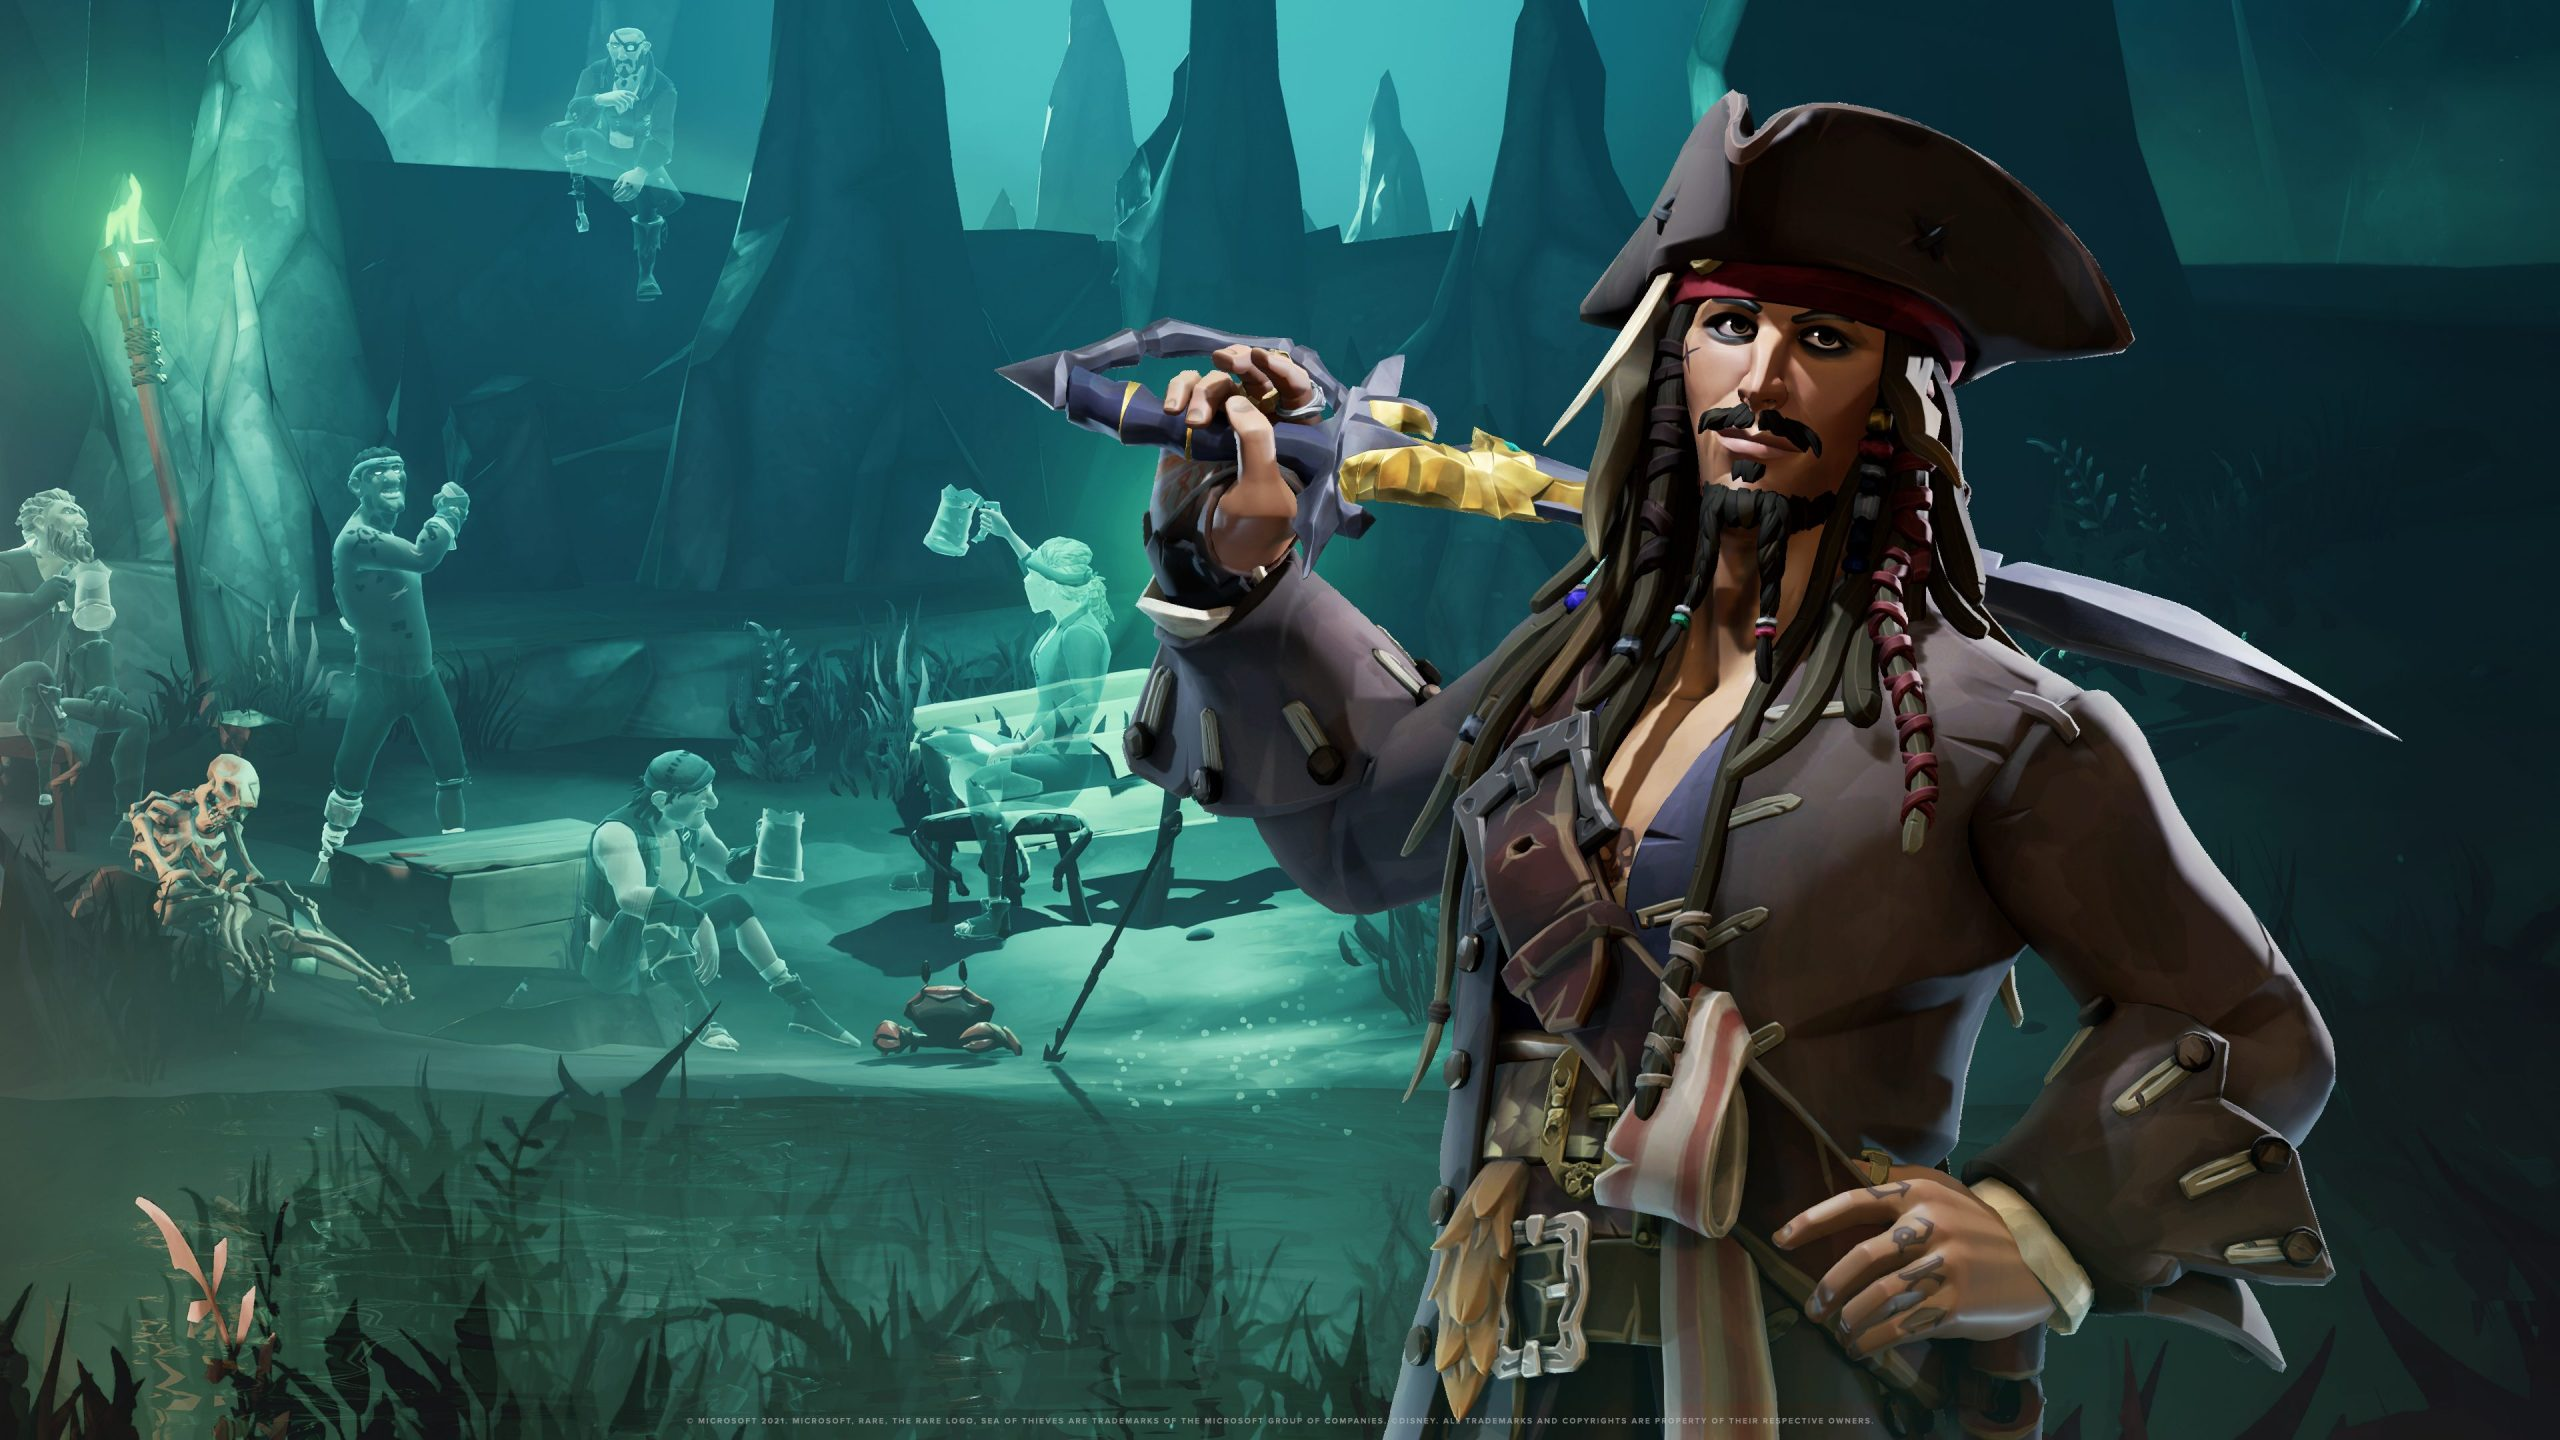 Sea of thieves a pirate's life Jack Sparrow